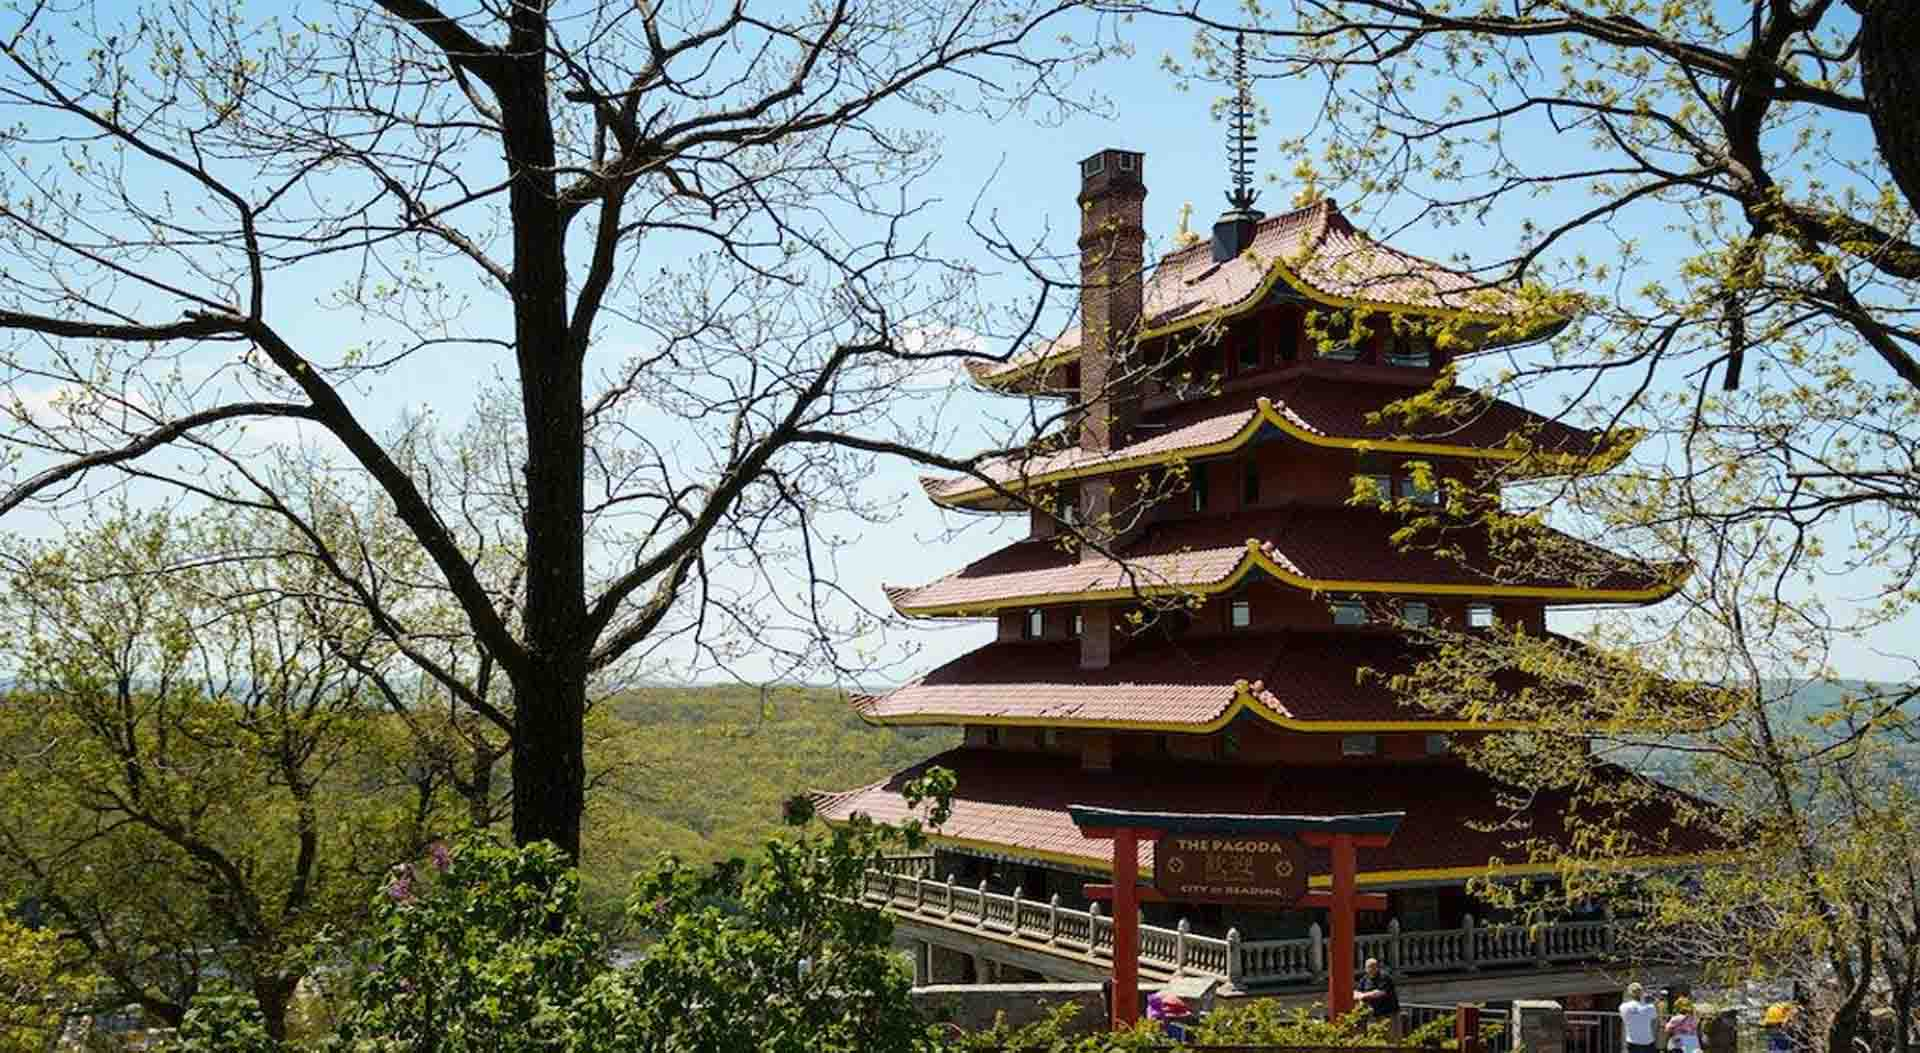 The Pagoda on top of Mt. Penn in Reading Berks County PA